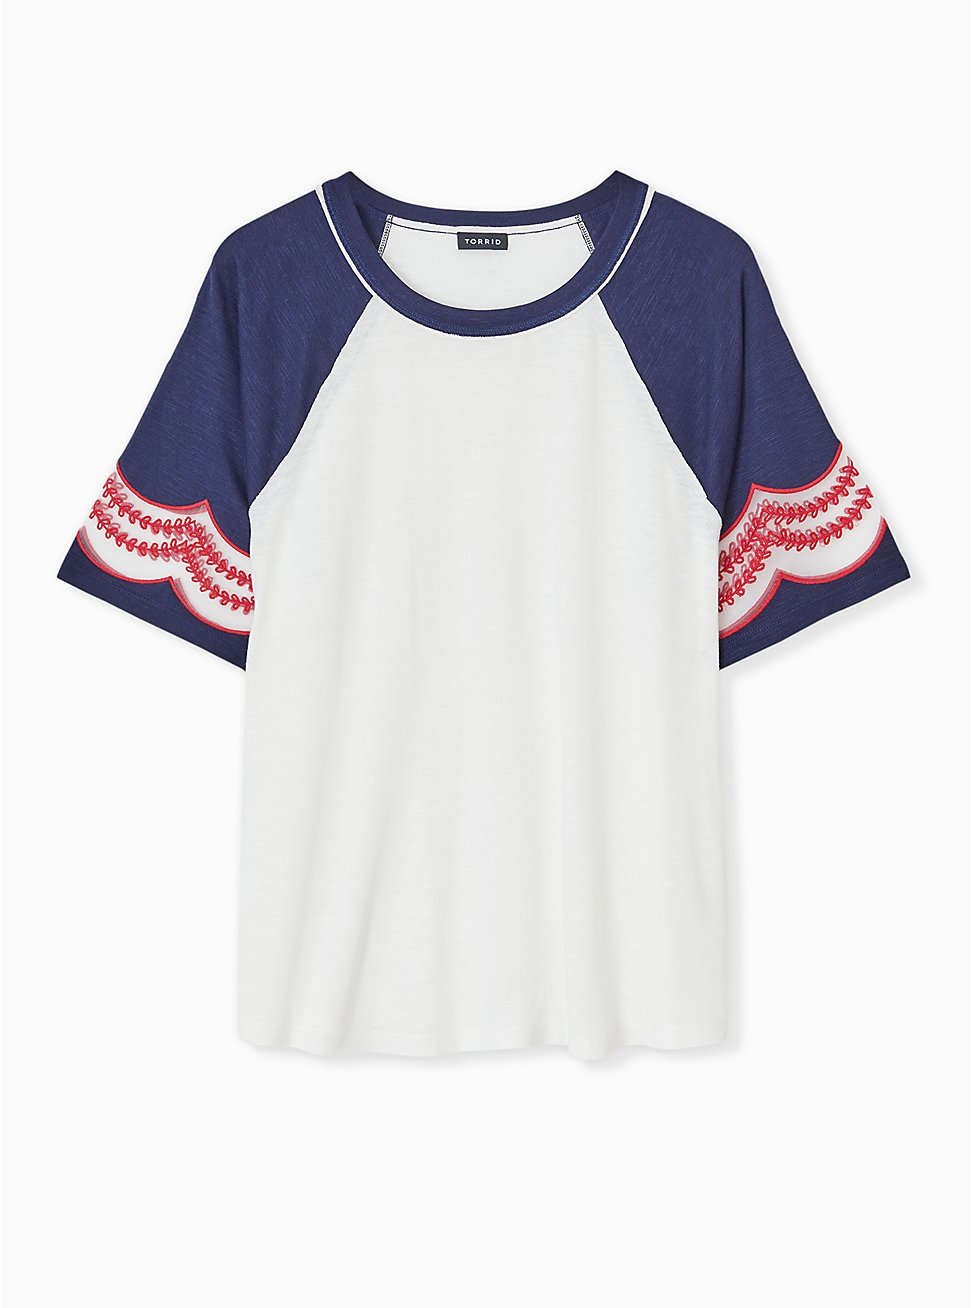 Ivory & Navy Slub Embroidered Midi Raglan Tee, CLOUD DANCER, hi-res